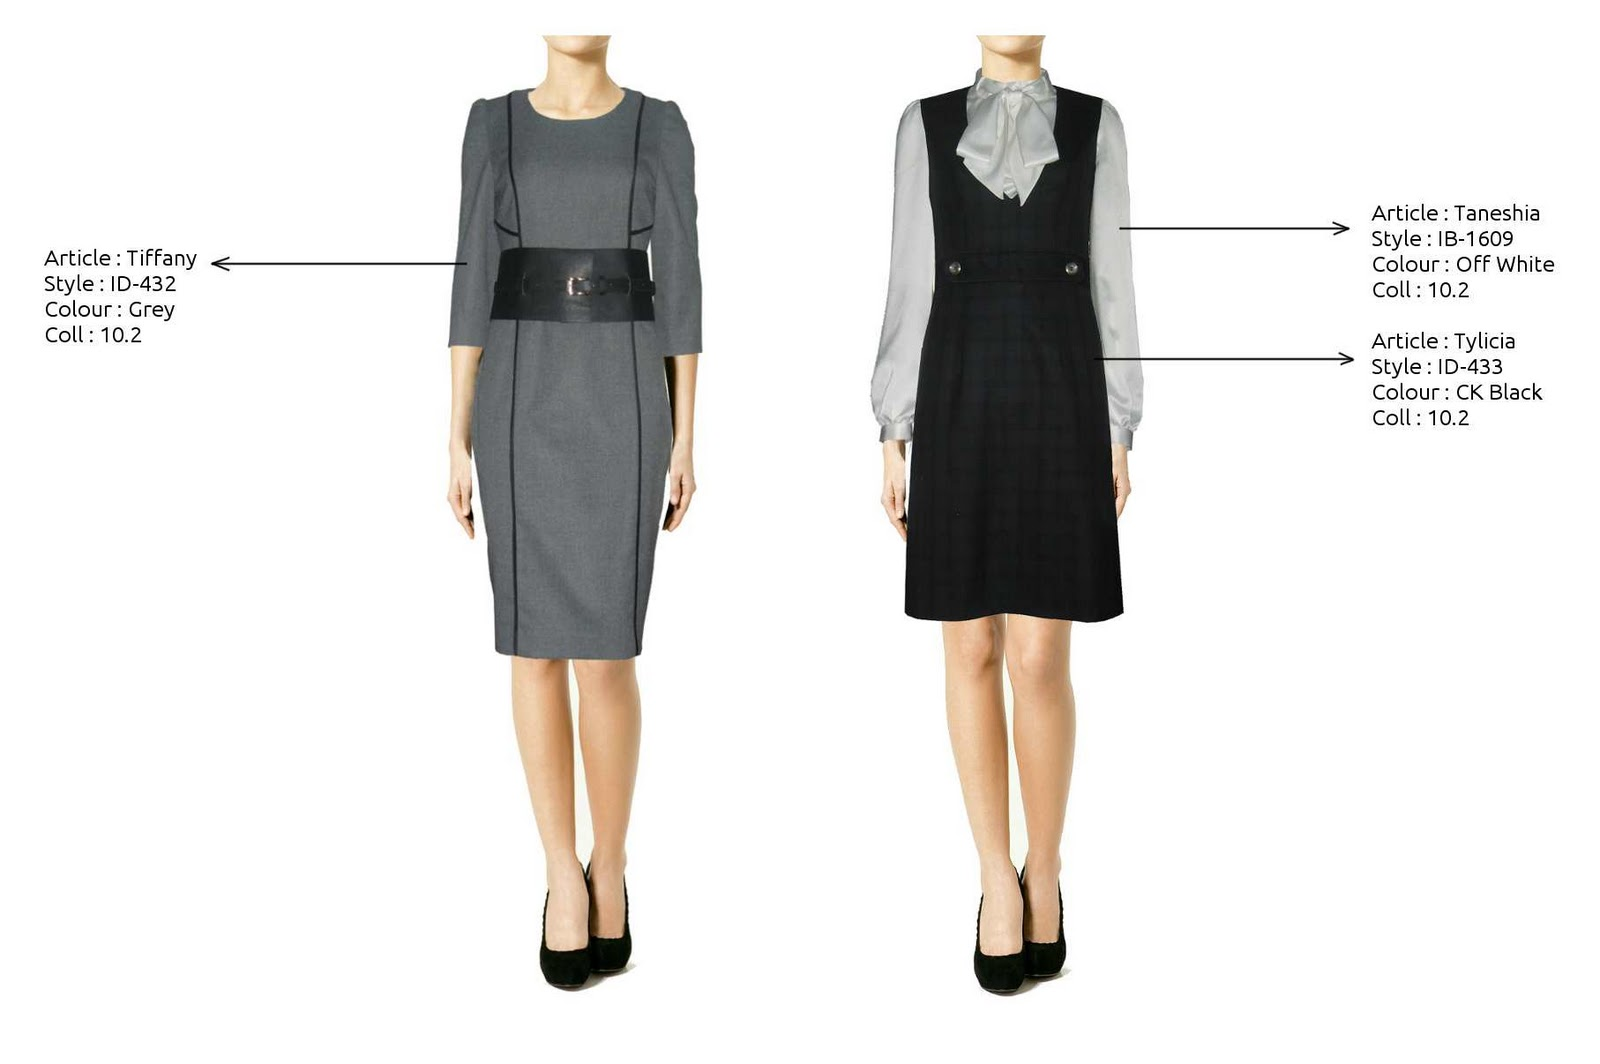 Invio Blazer http://twothousandthings.blogspot.com/2011/11/bankers-day-sale.html